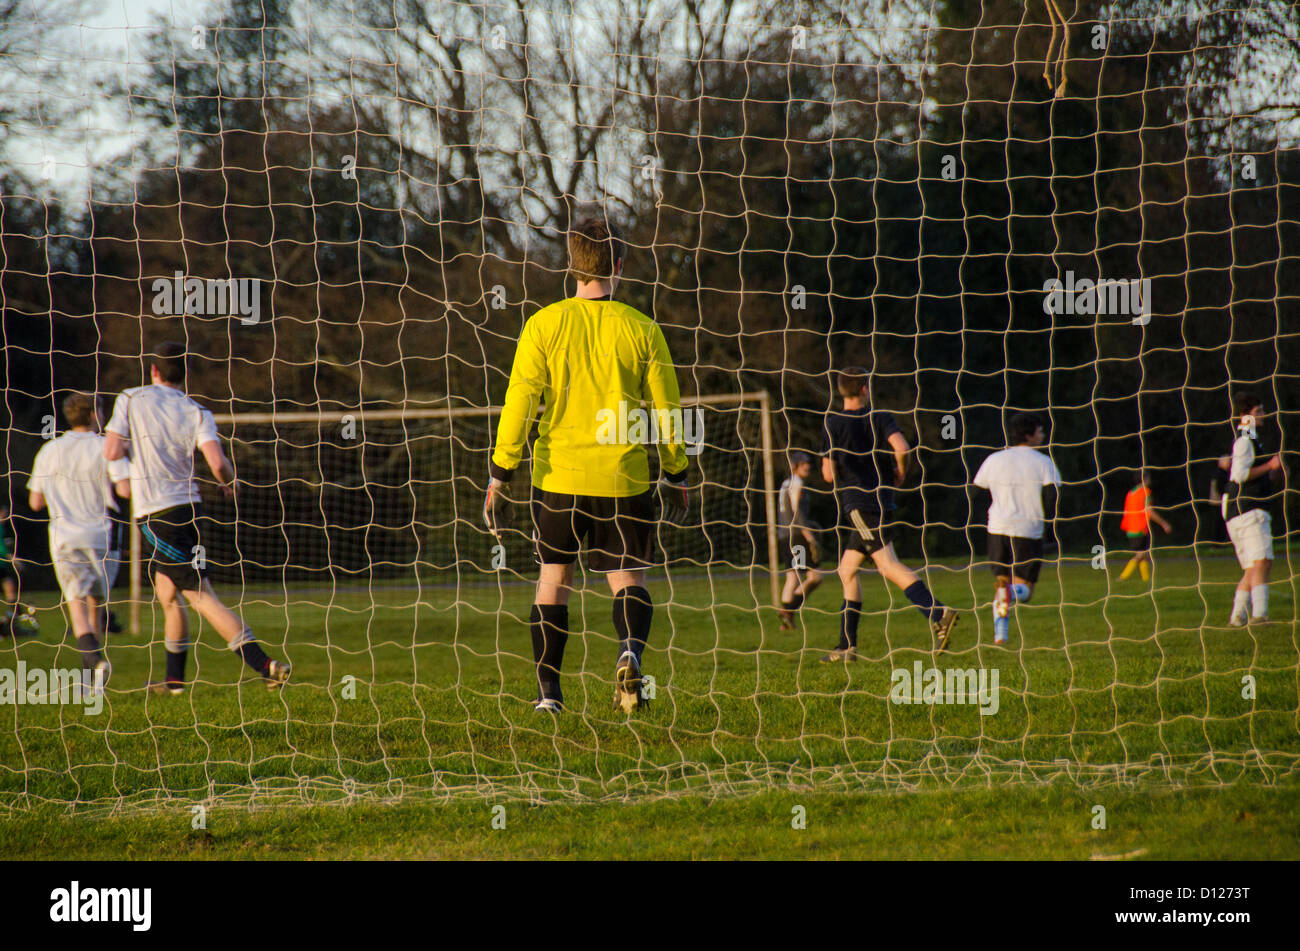 Football game, Goal, goalkeeper and players, The Downs, Bristol, UK - Stock Image